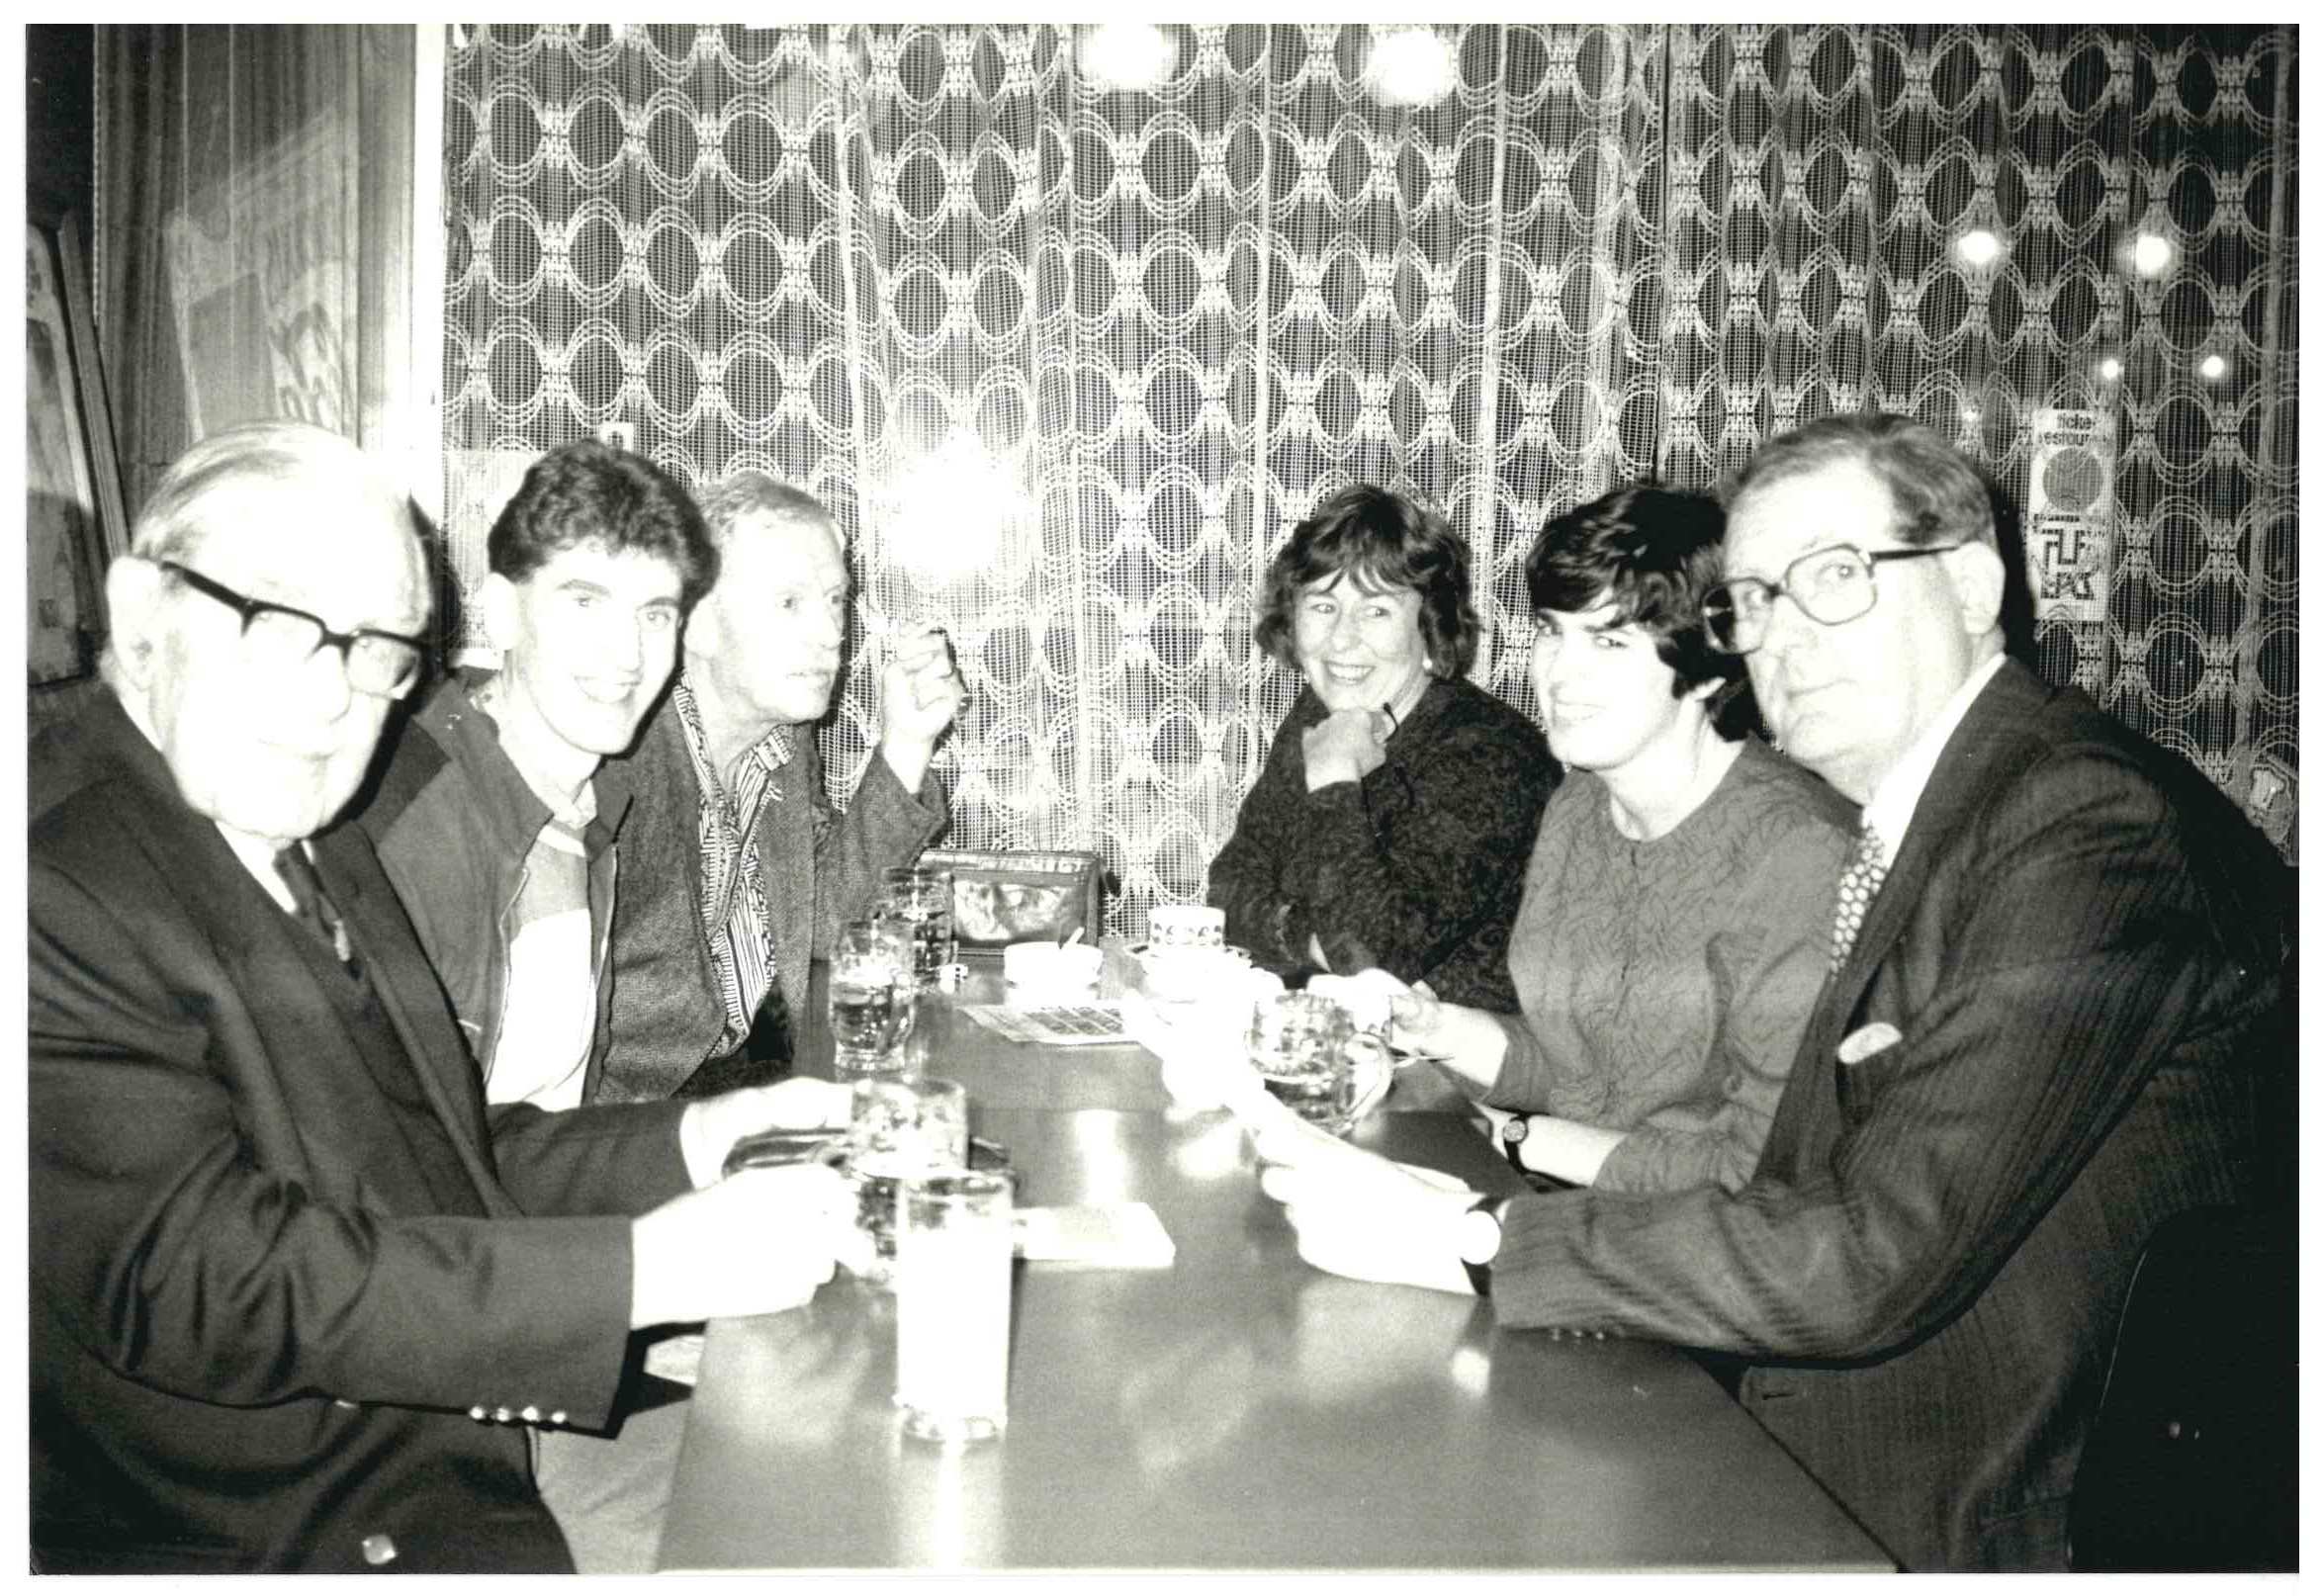 00514-Paris, John, Bob Taylor, Wendy Taylor, David Grey, Bill Blackshaw.jpg